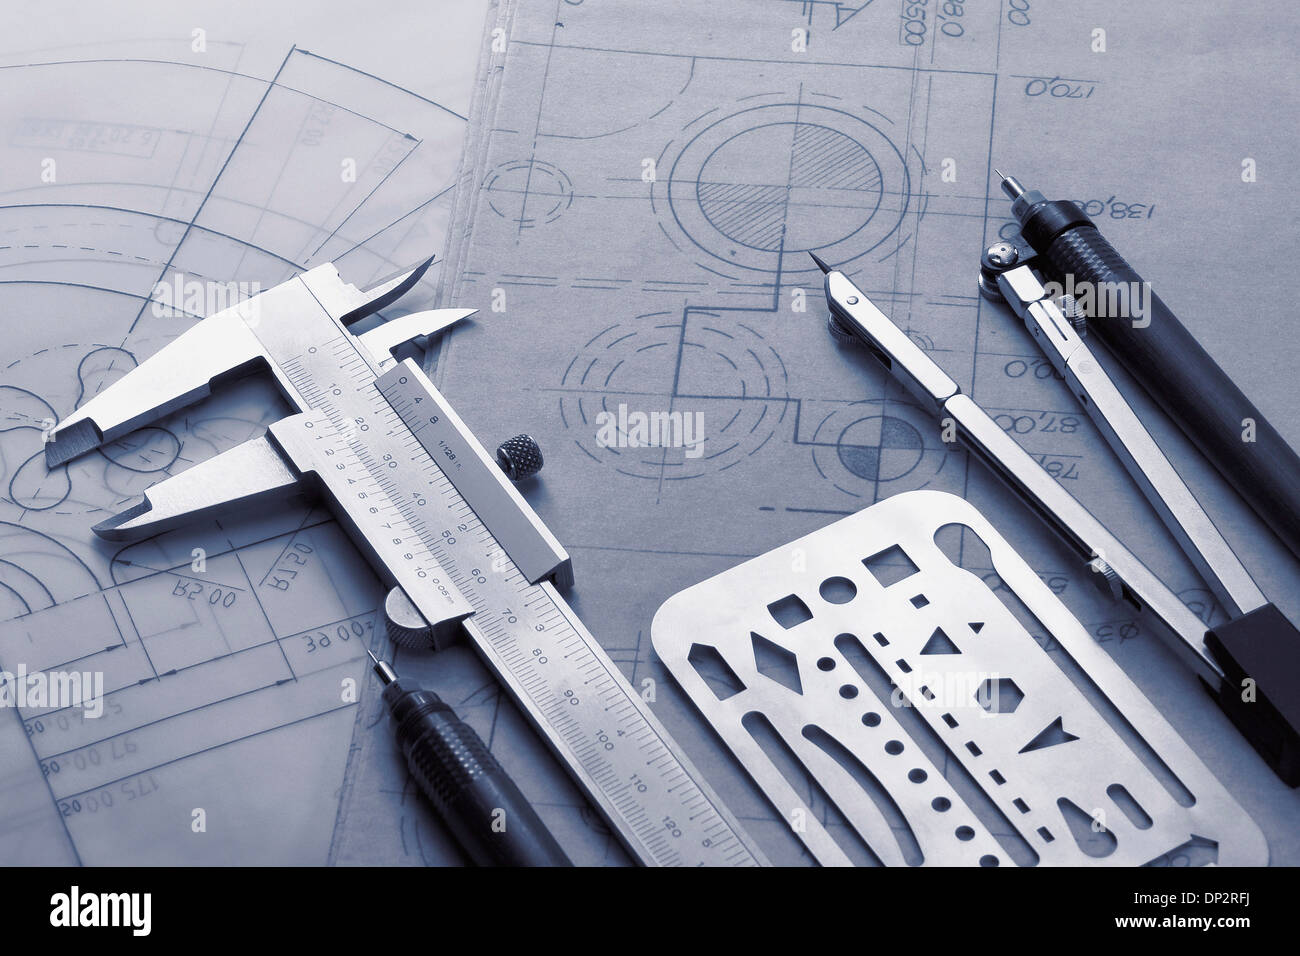 technical drawing instruments stock photo 65215910 alamy